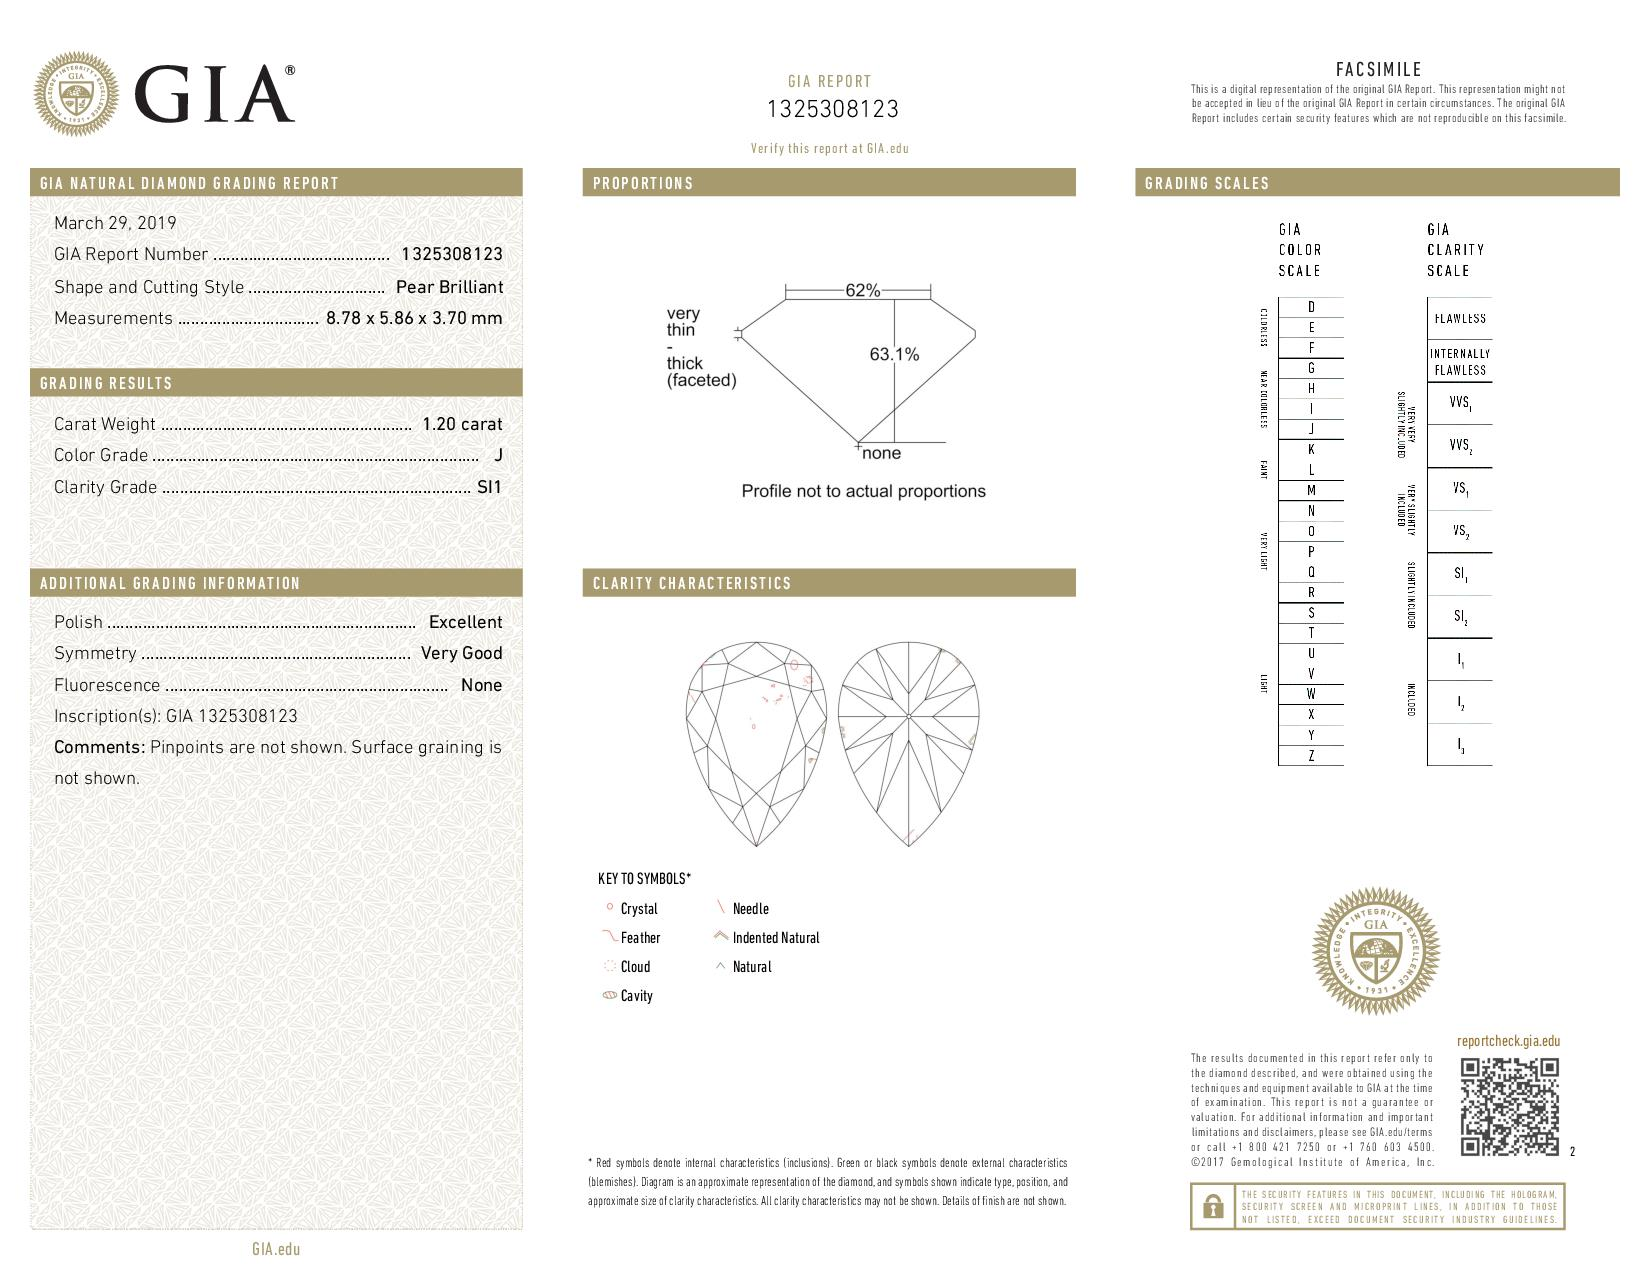 This is a 1.20 carat pear shape, J color, SI1 clarity natural diamond accompanied by a GIA grading report.